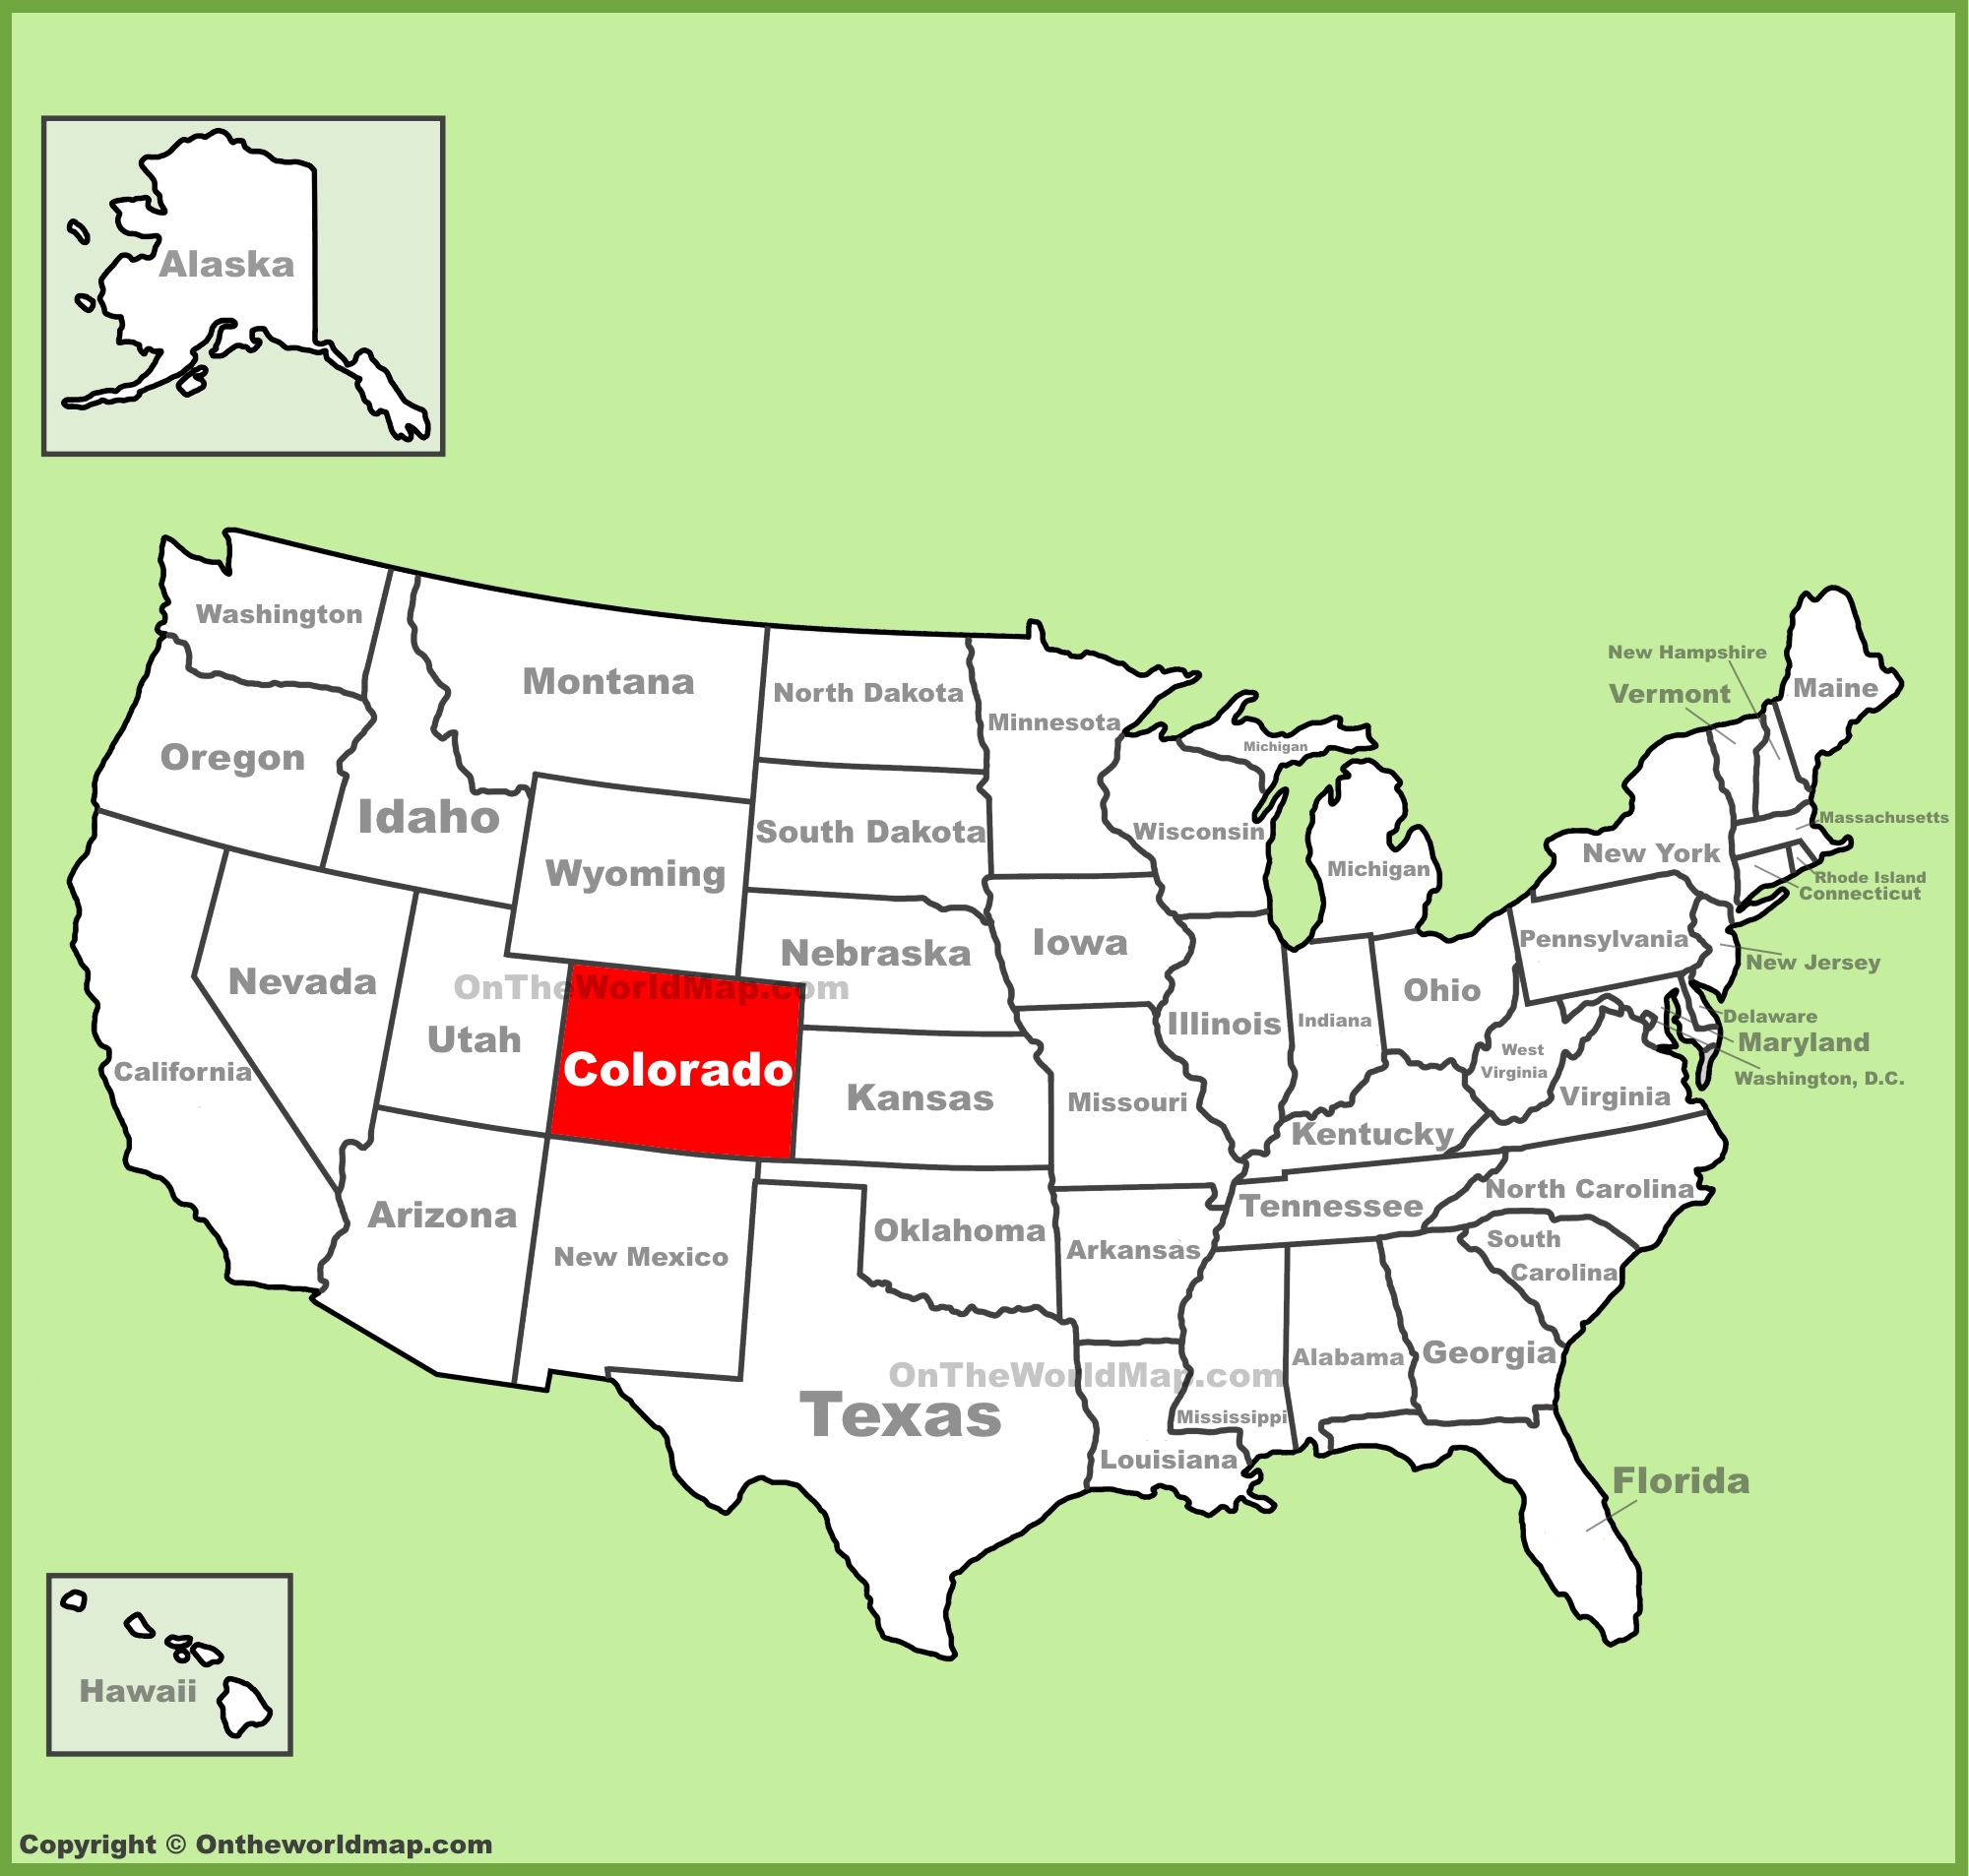 Colorado Location On The US Map - Colorado in us map